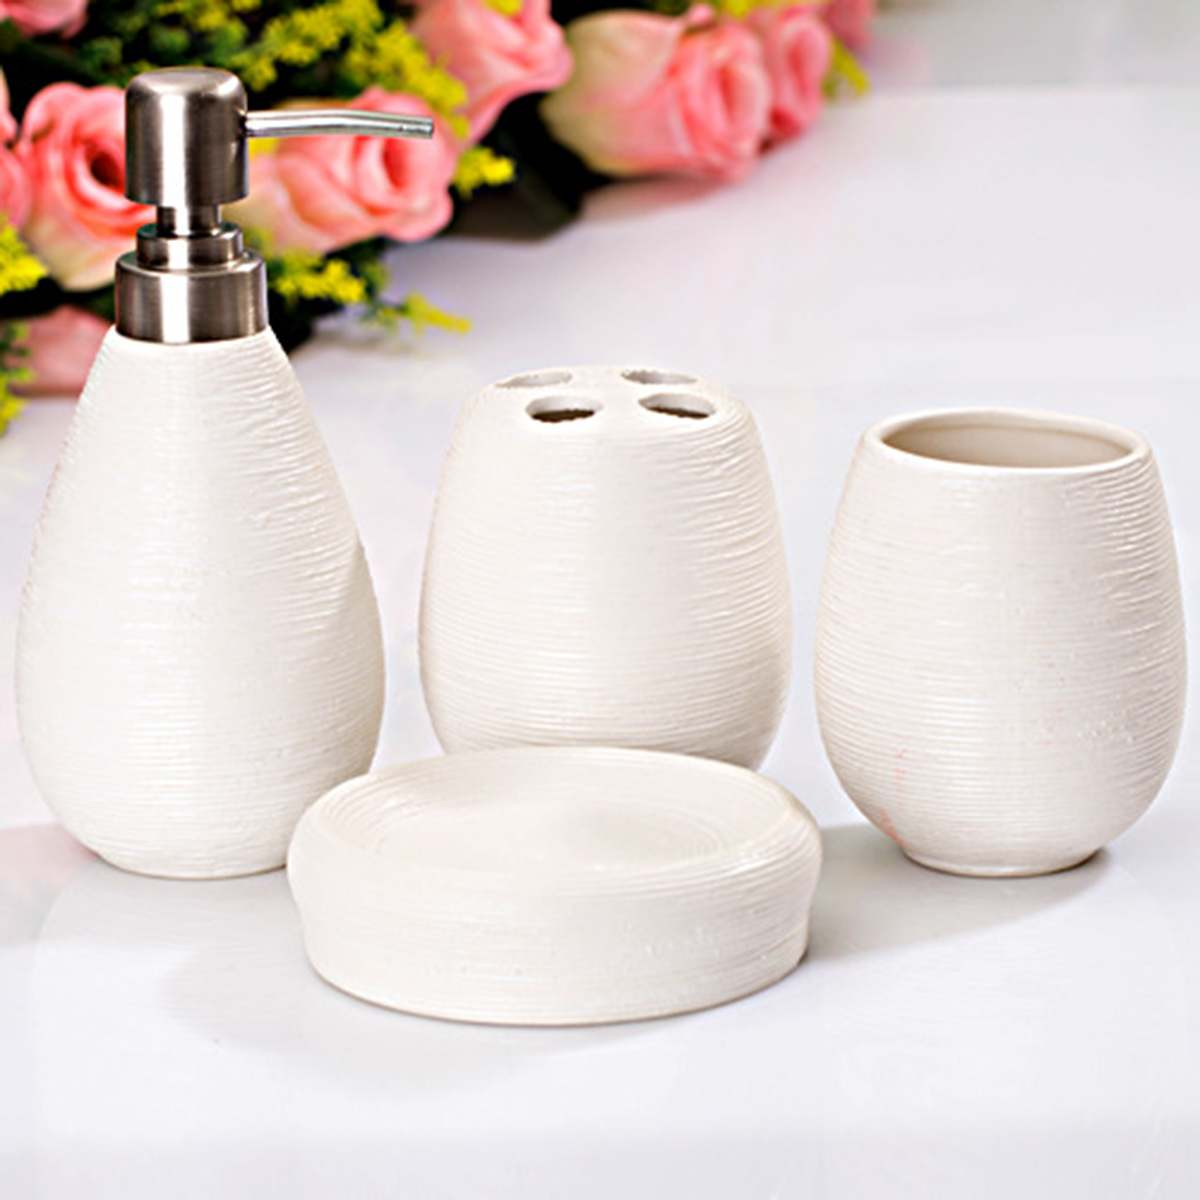 4Pcs/Set Ceramic Textural Bathroom Accessory Retro Lotion Dispenser Toothbrush Holder Cup Soap Dish Modern Toilet Home Decor image